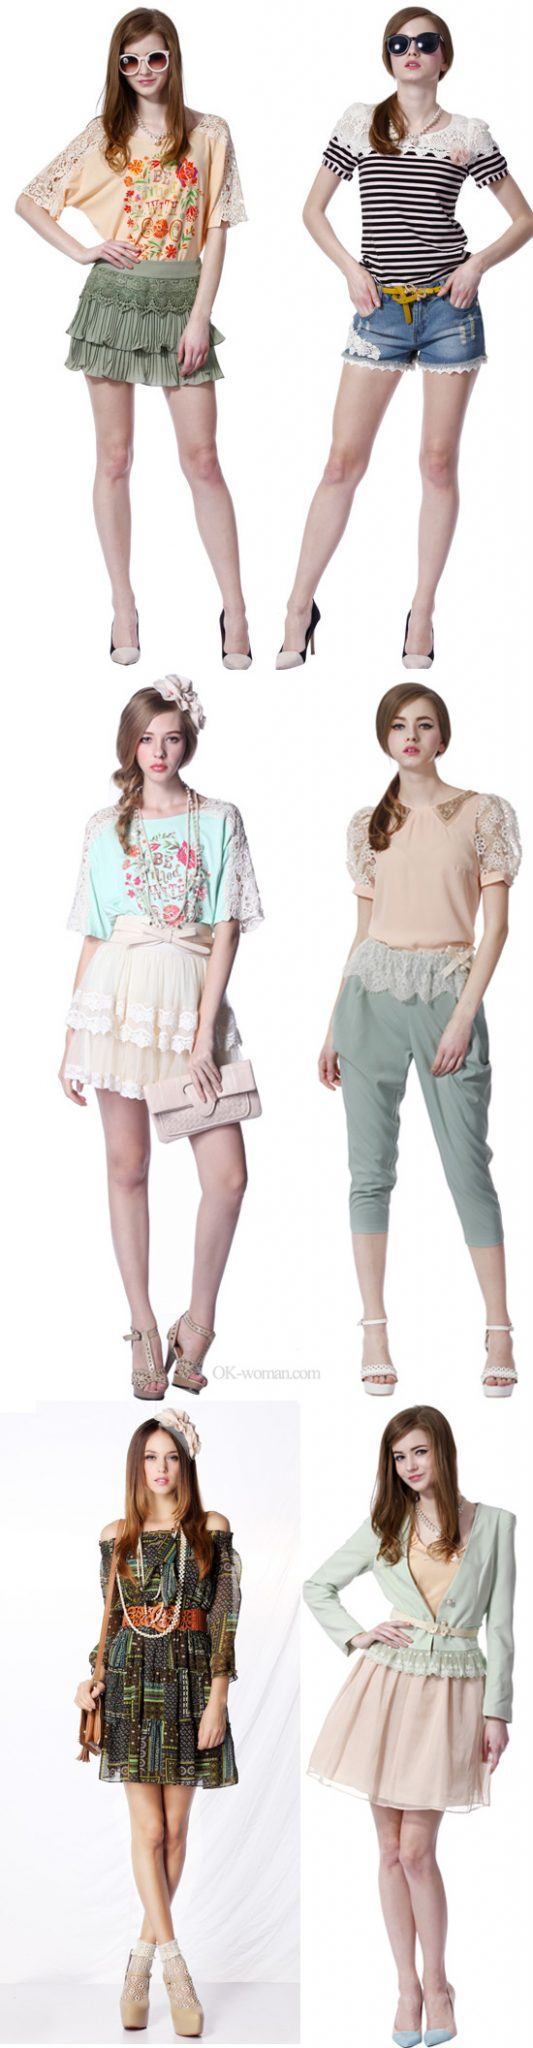 romantic style clothing 2014 ss